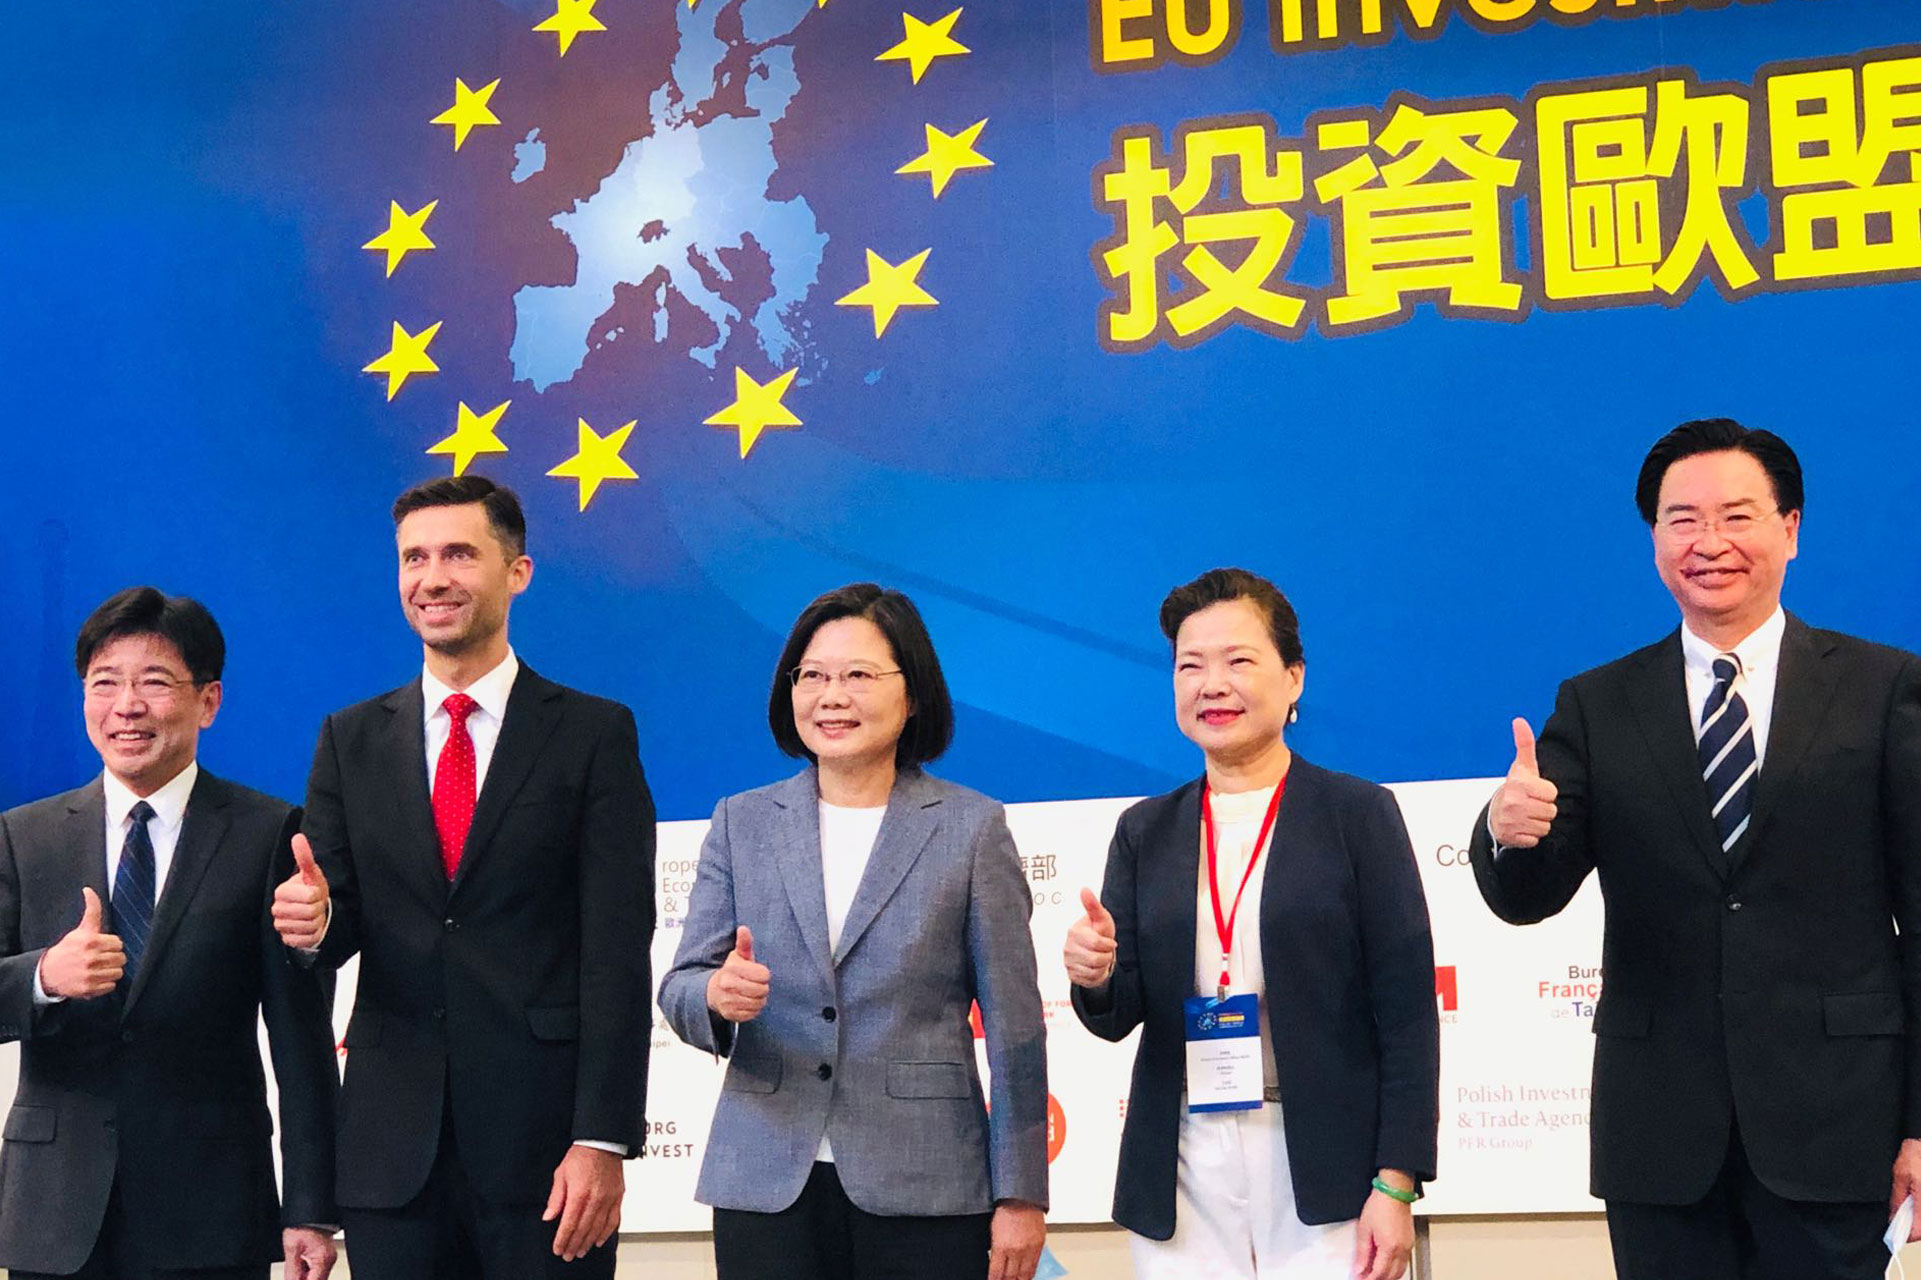 The first EU Investment Forum Photo-1